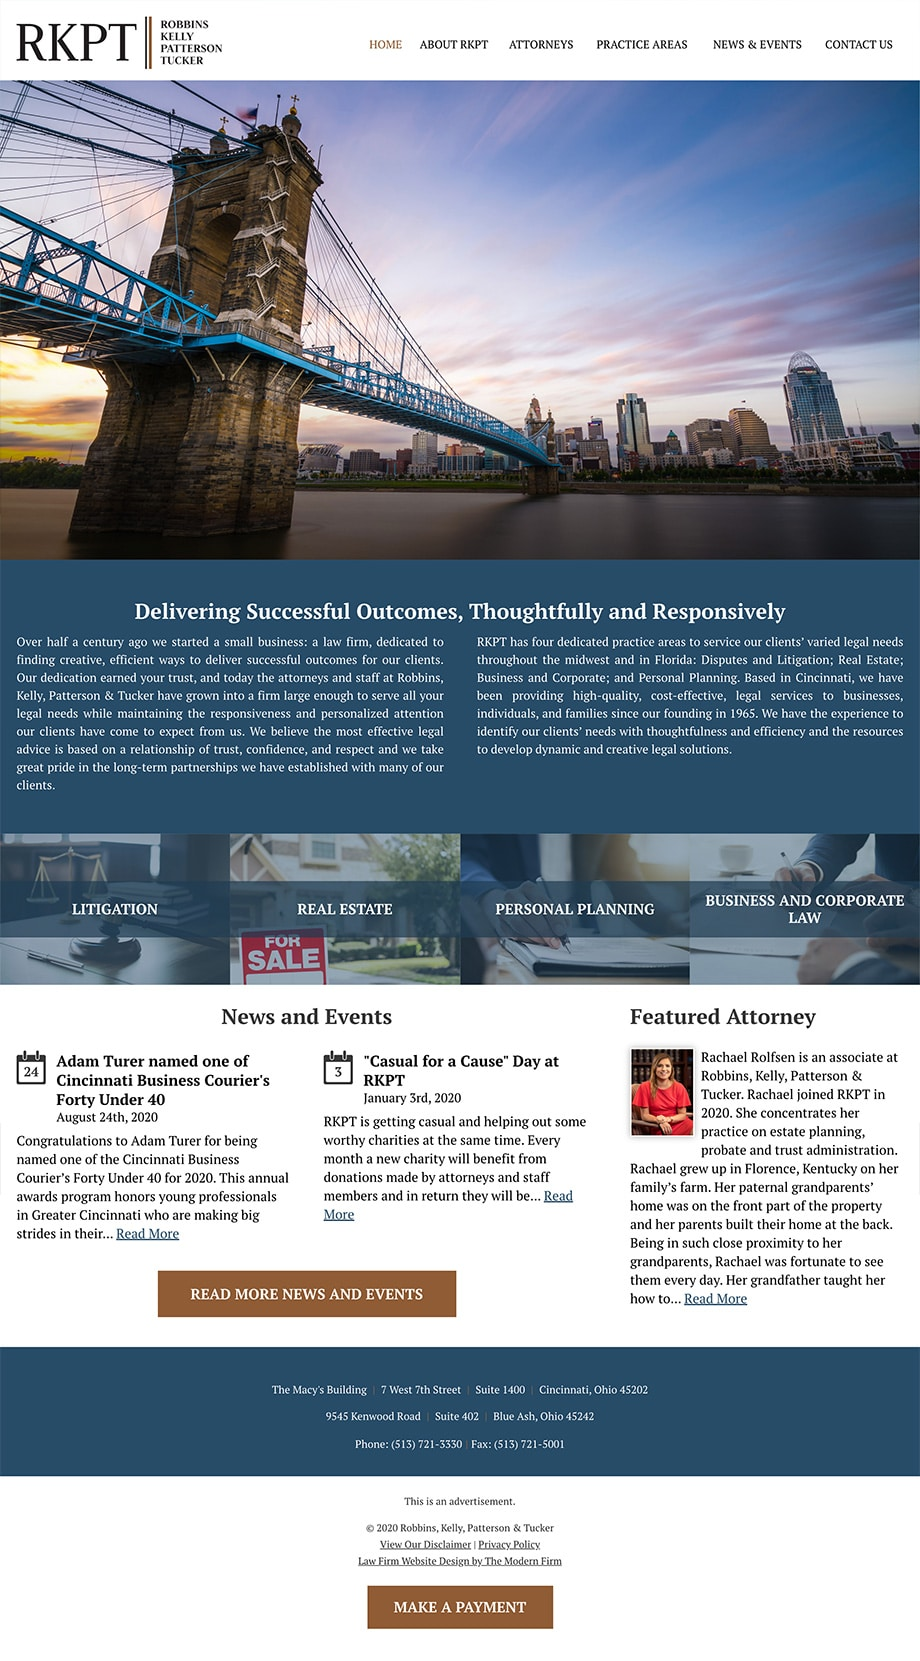 Law Firm Website Design for Robbins Kelly Patterson Tucker